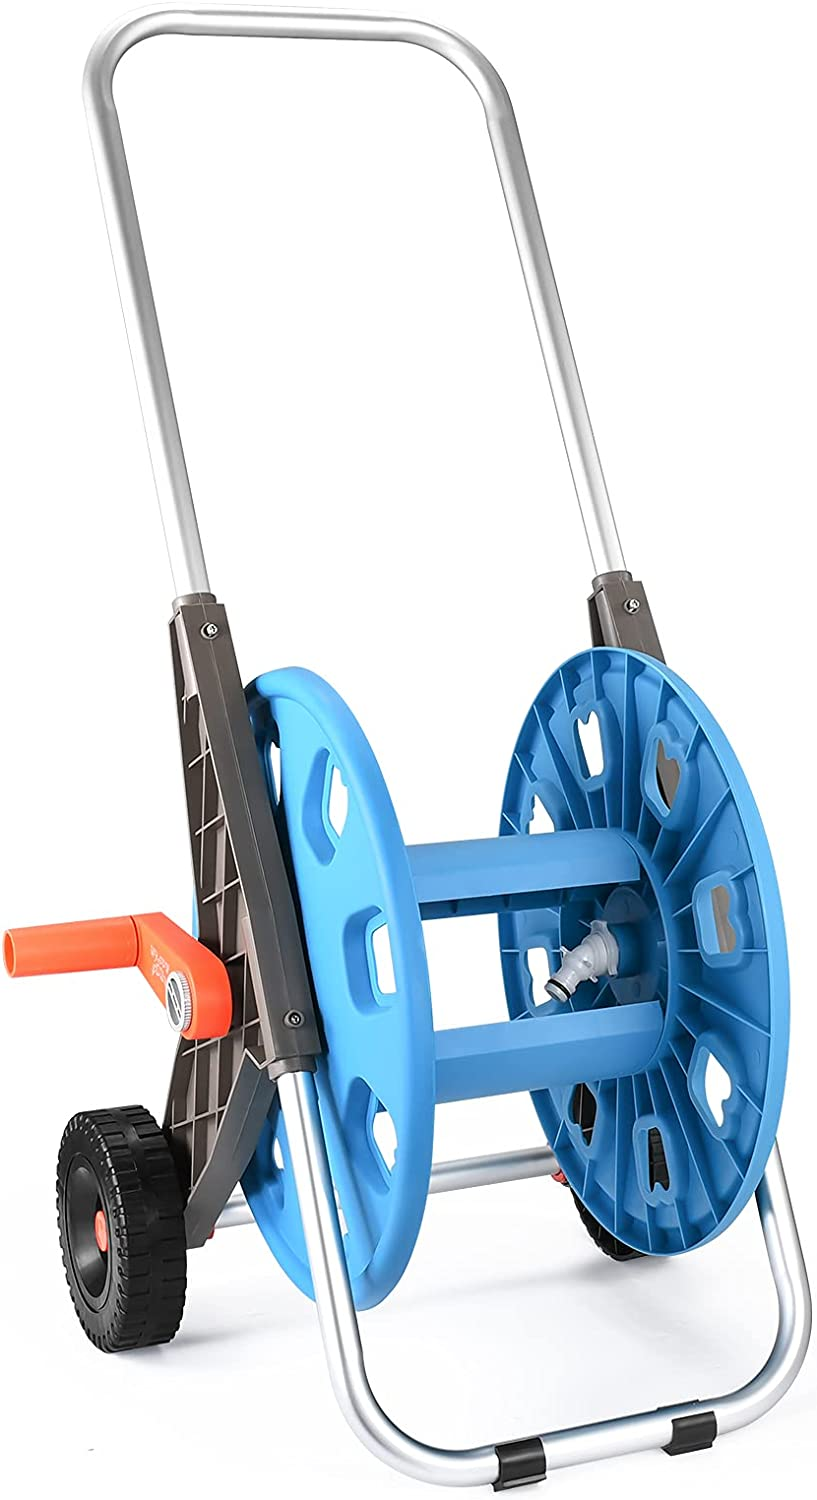 HVDI Garden Hose Reel Cart with 2 Wheels and Heavy Duty Outdoor Water Planting Cart, Retractable Carts Metal HandleHold 175 Feet of 1/2